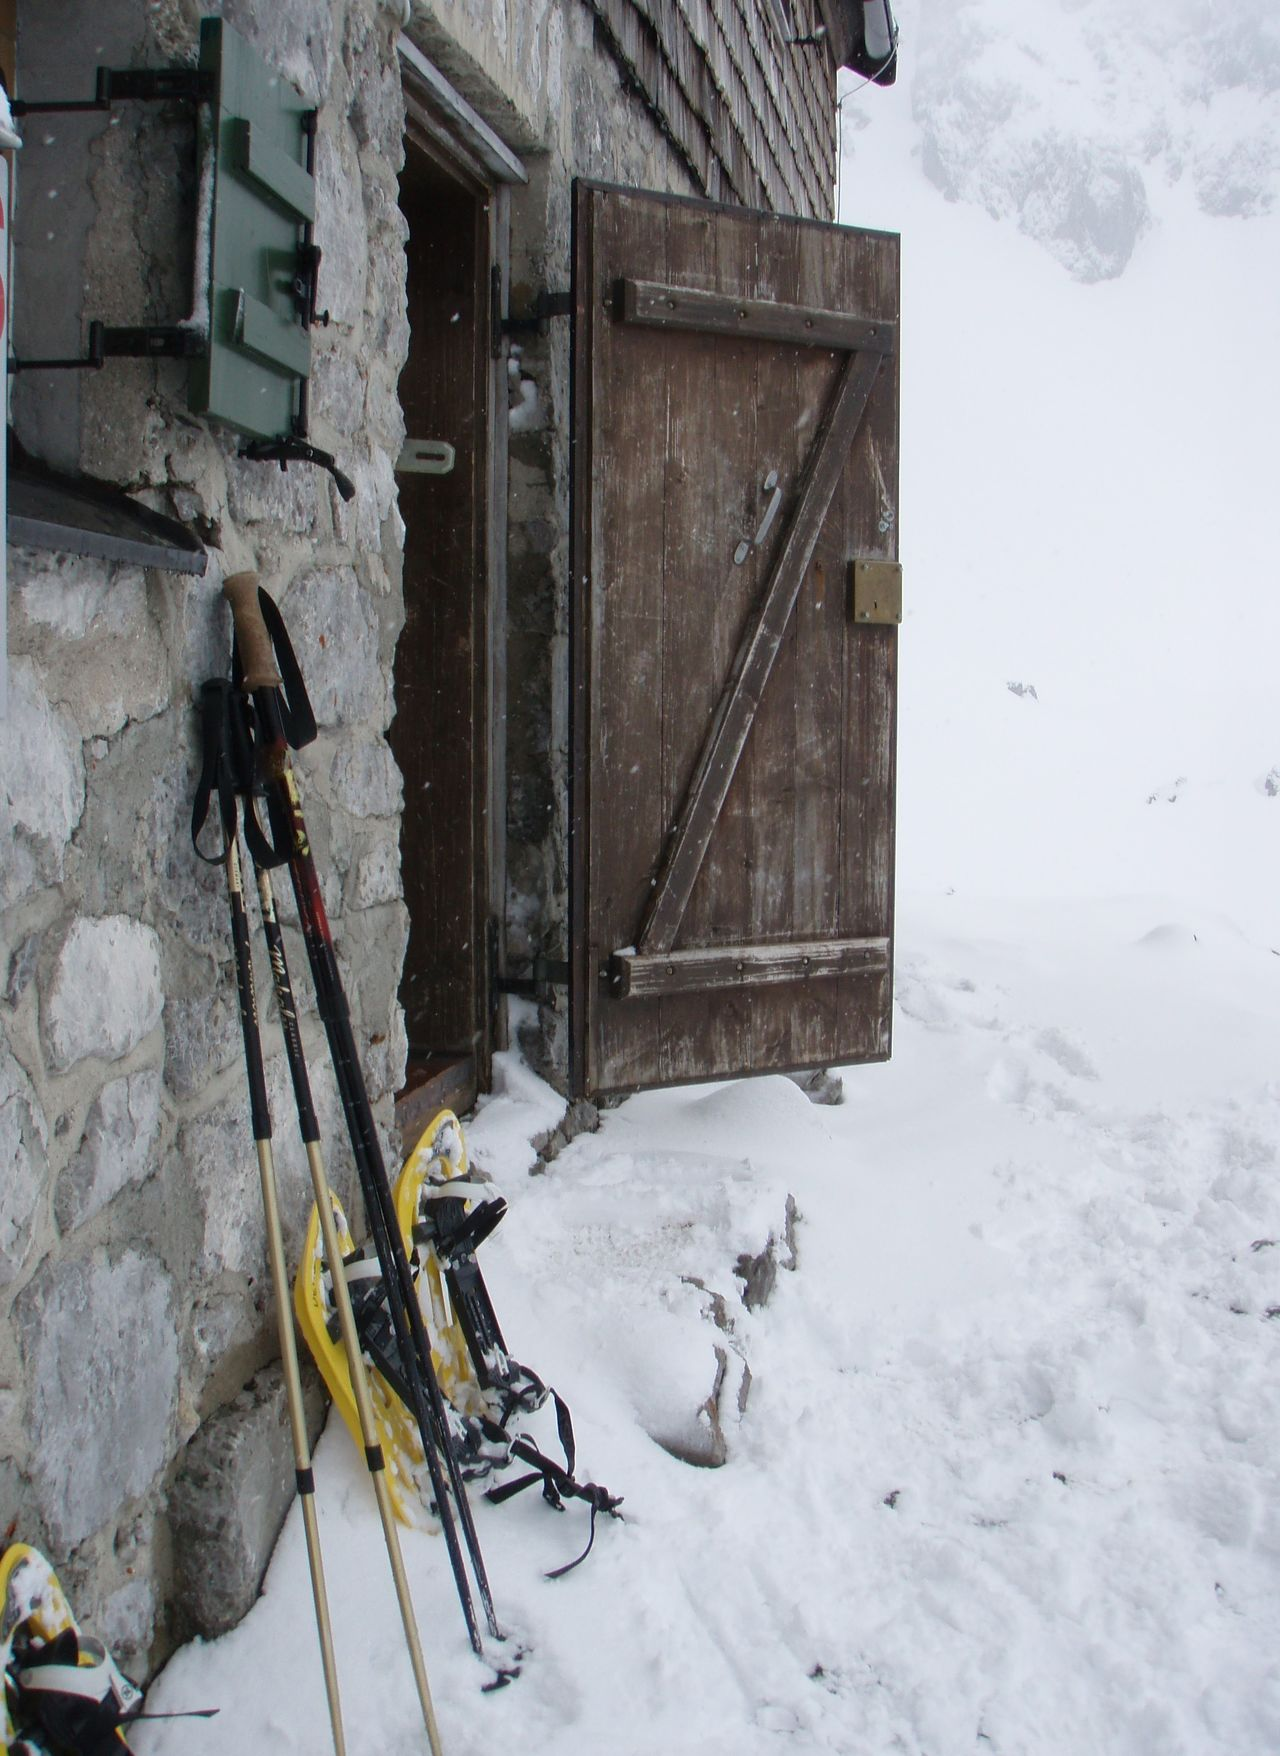 Have a break! Alps Austria Beauty In Nature Break Breaktime Building Exterior Cold Temperature Day Door House Mountain Mountain Hut Mountain Shelter Nature No People Outdoors Rest Sky Snow Snowshoeing Stone Wall Wilder Kaiser Winter Winterwalk Wood - Material Miles Away